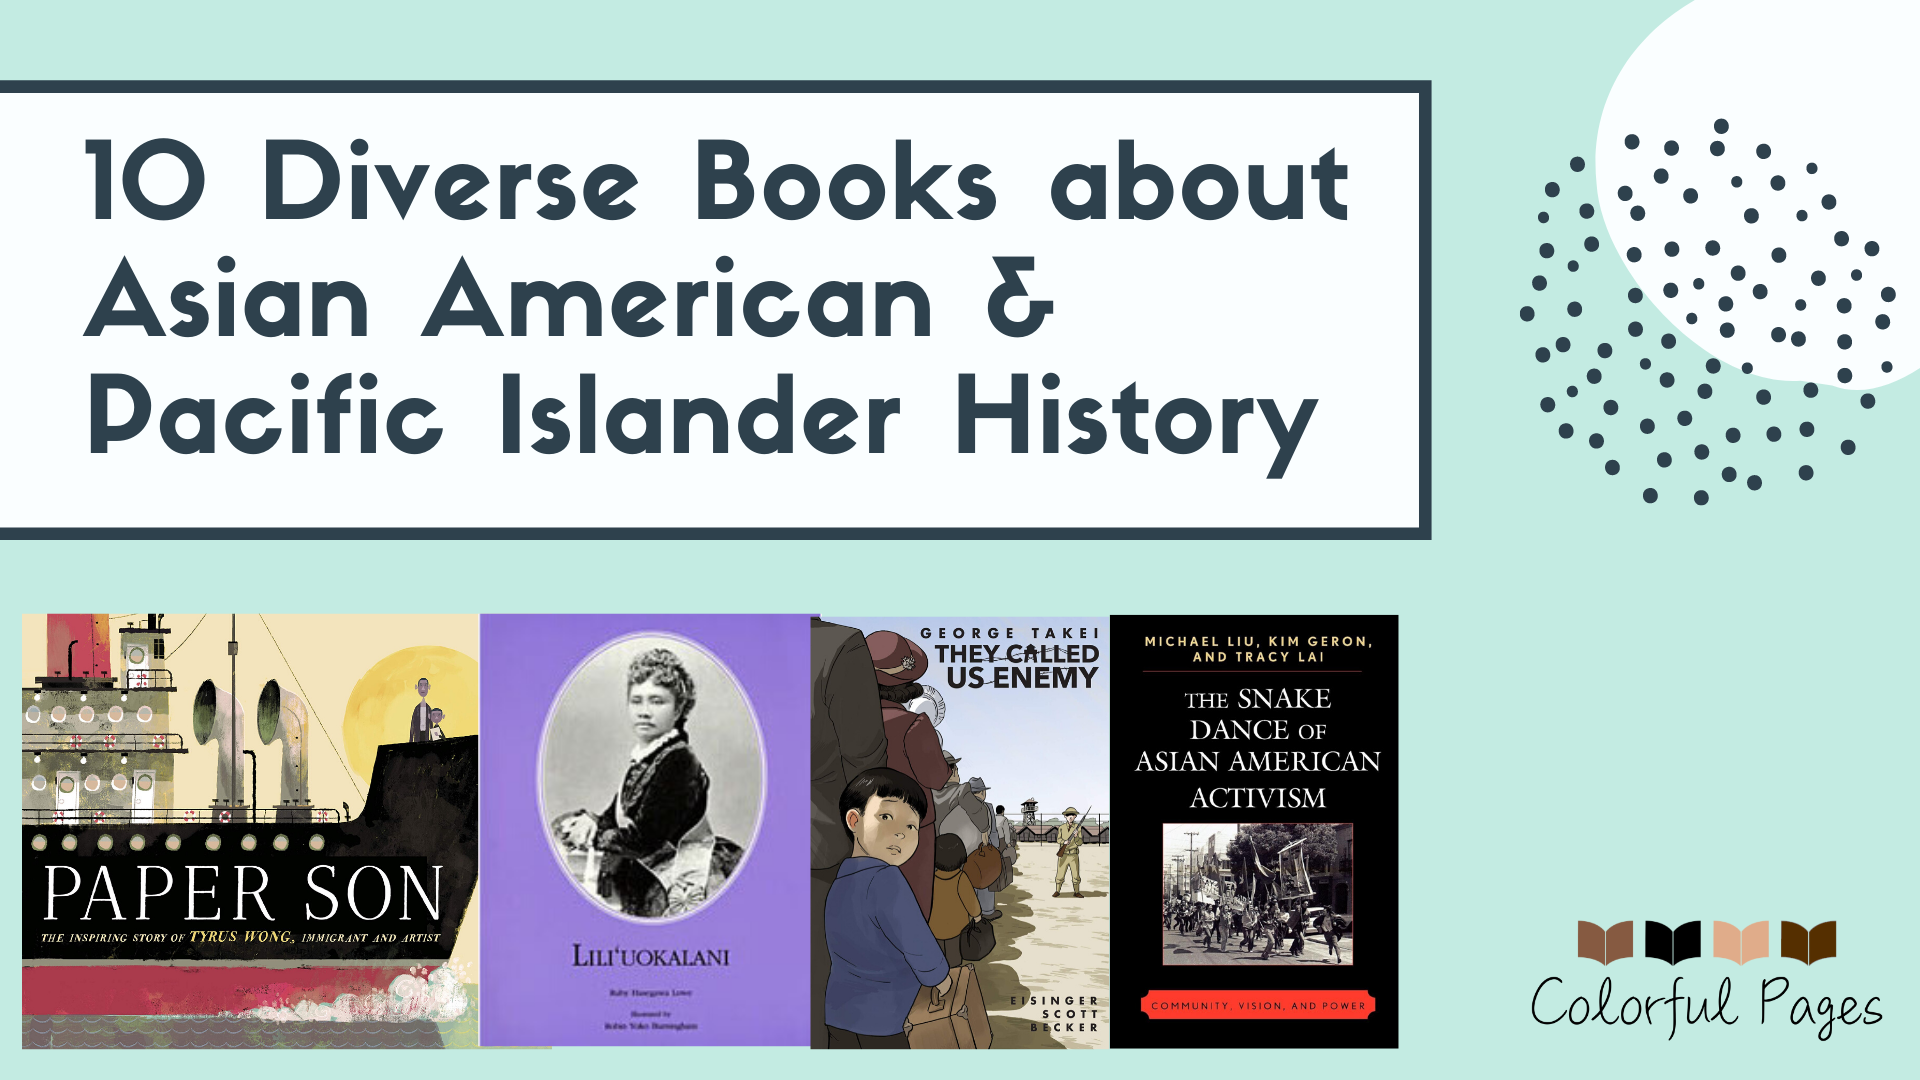 10 Diverse Books about Asian American and Pacific Islander History